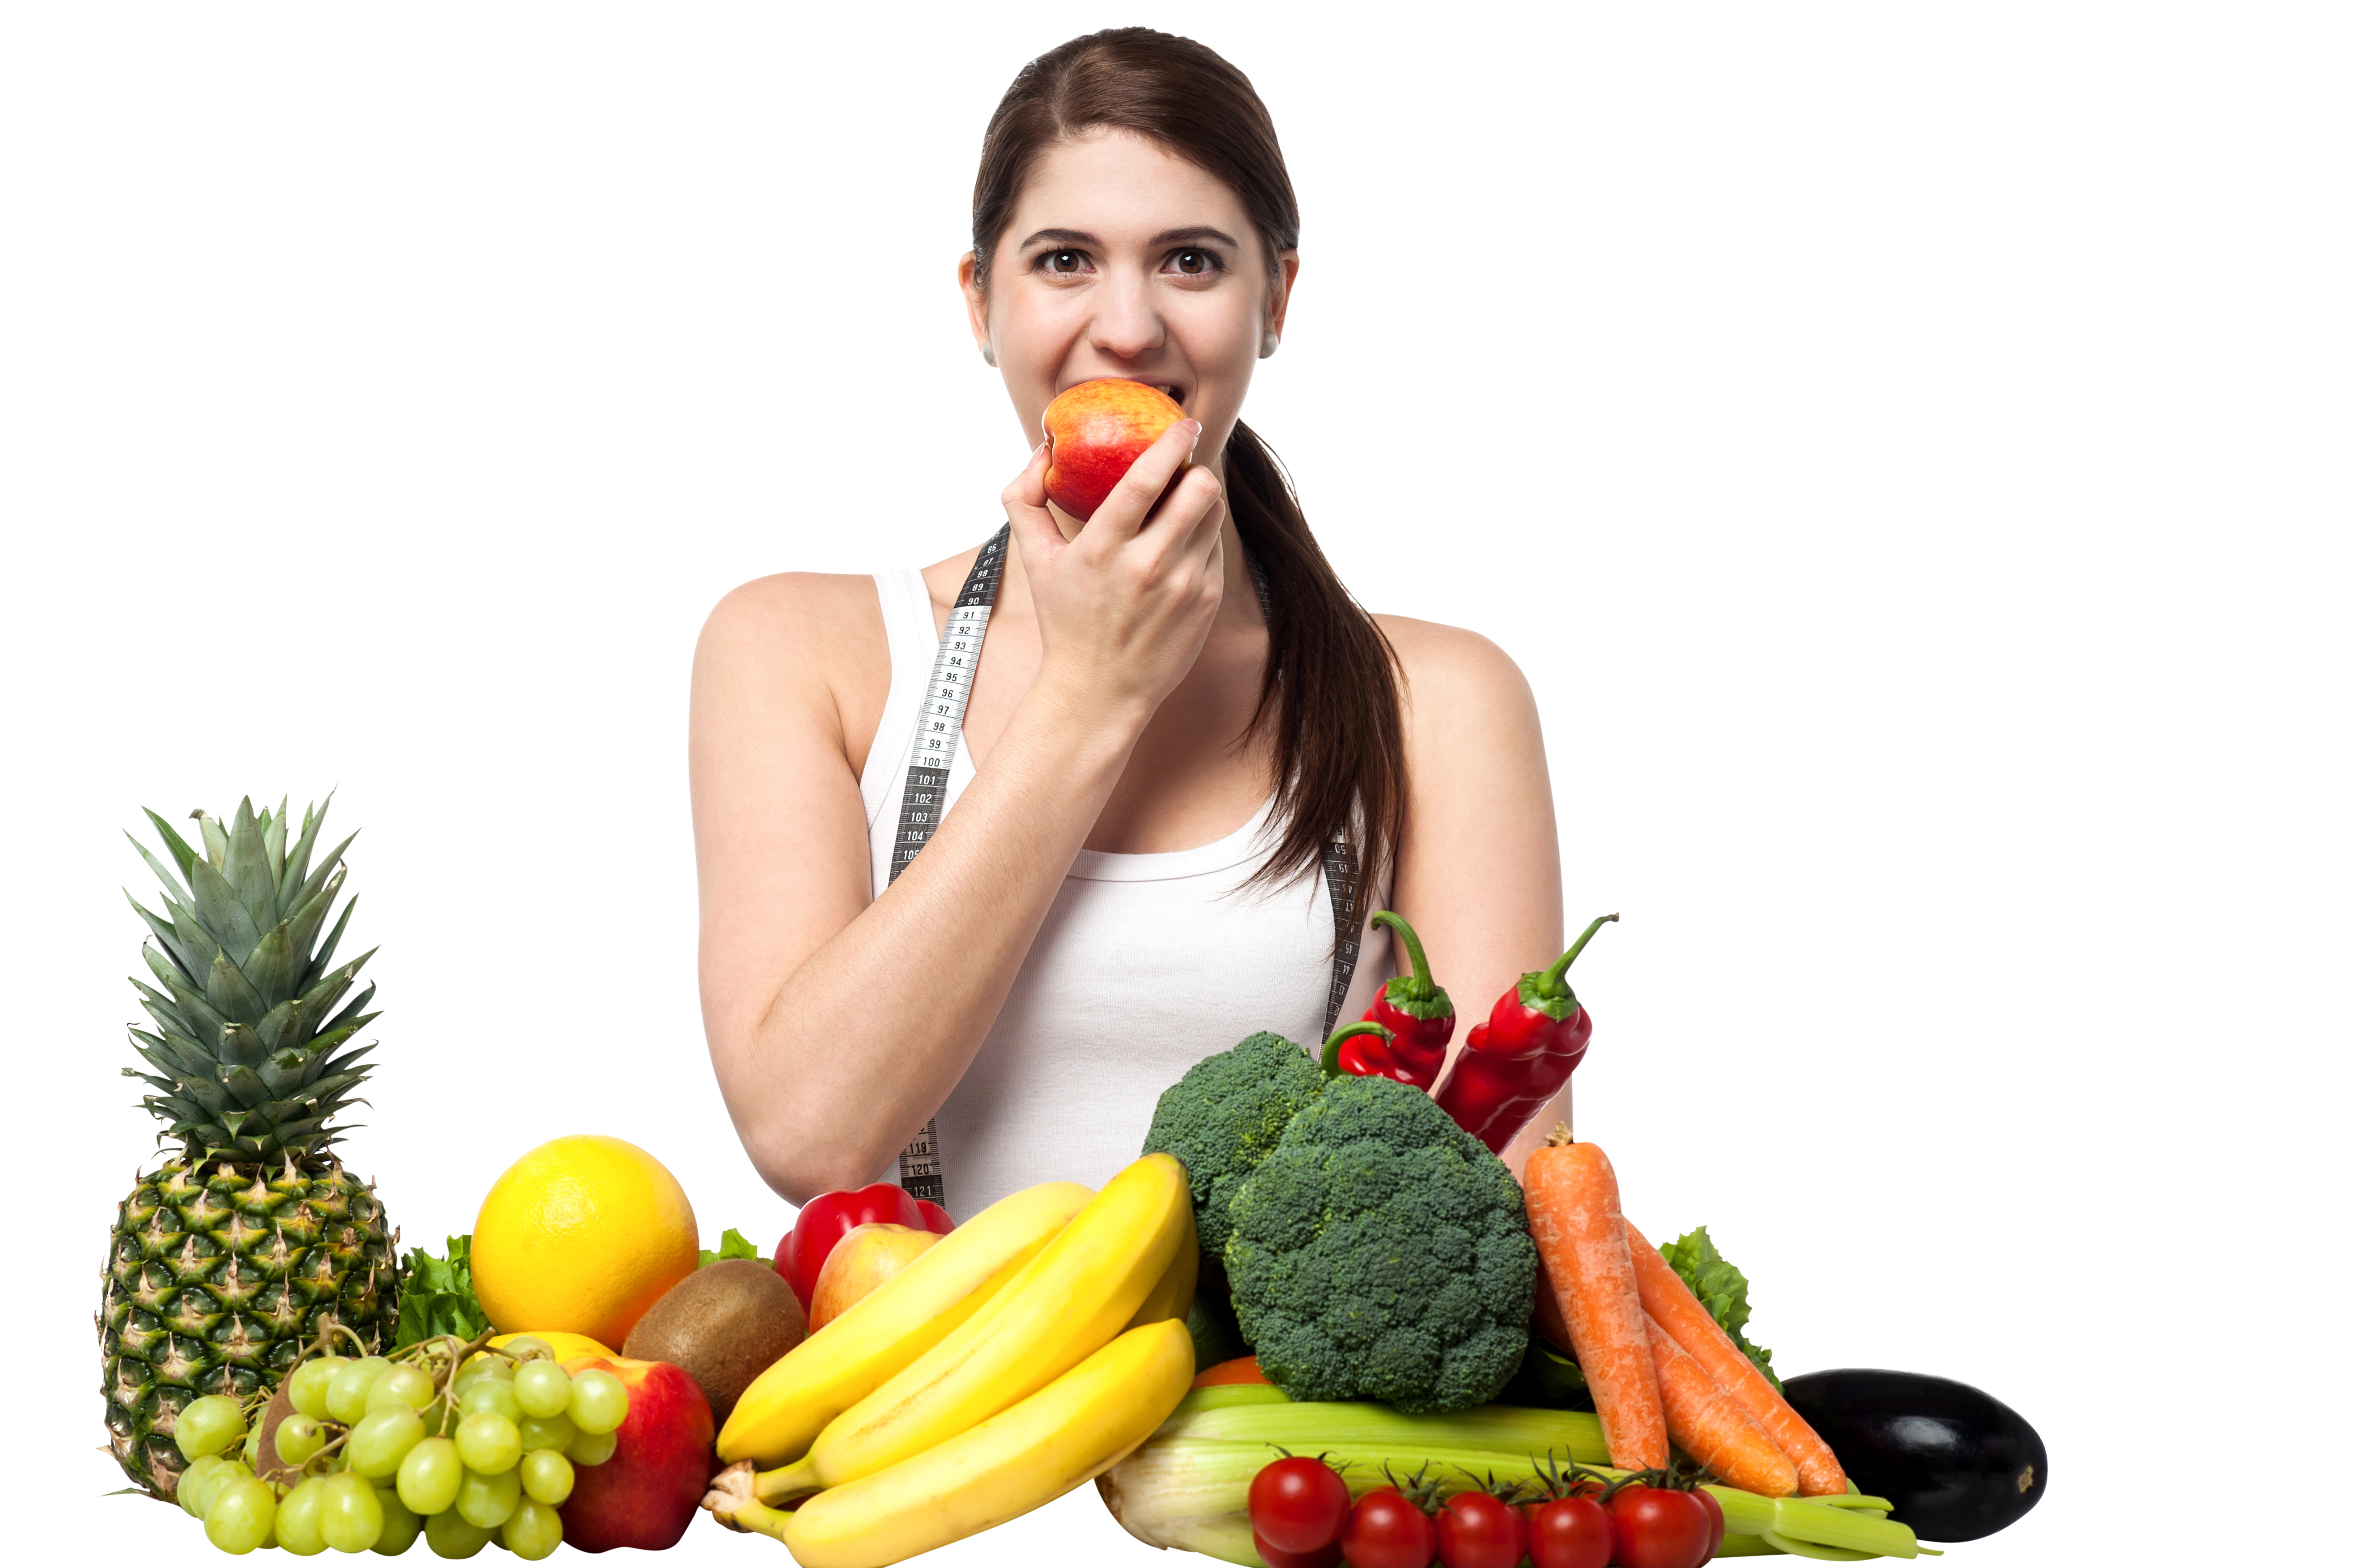 Girl With Fruits Free Commercial Use PNG Images - PNG Eating Food - Free PNG HD Images For Commercial Use